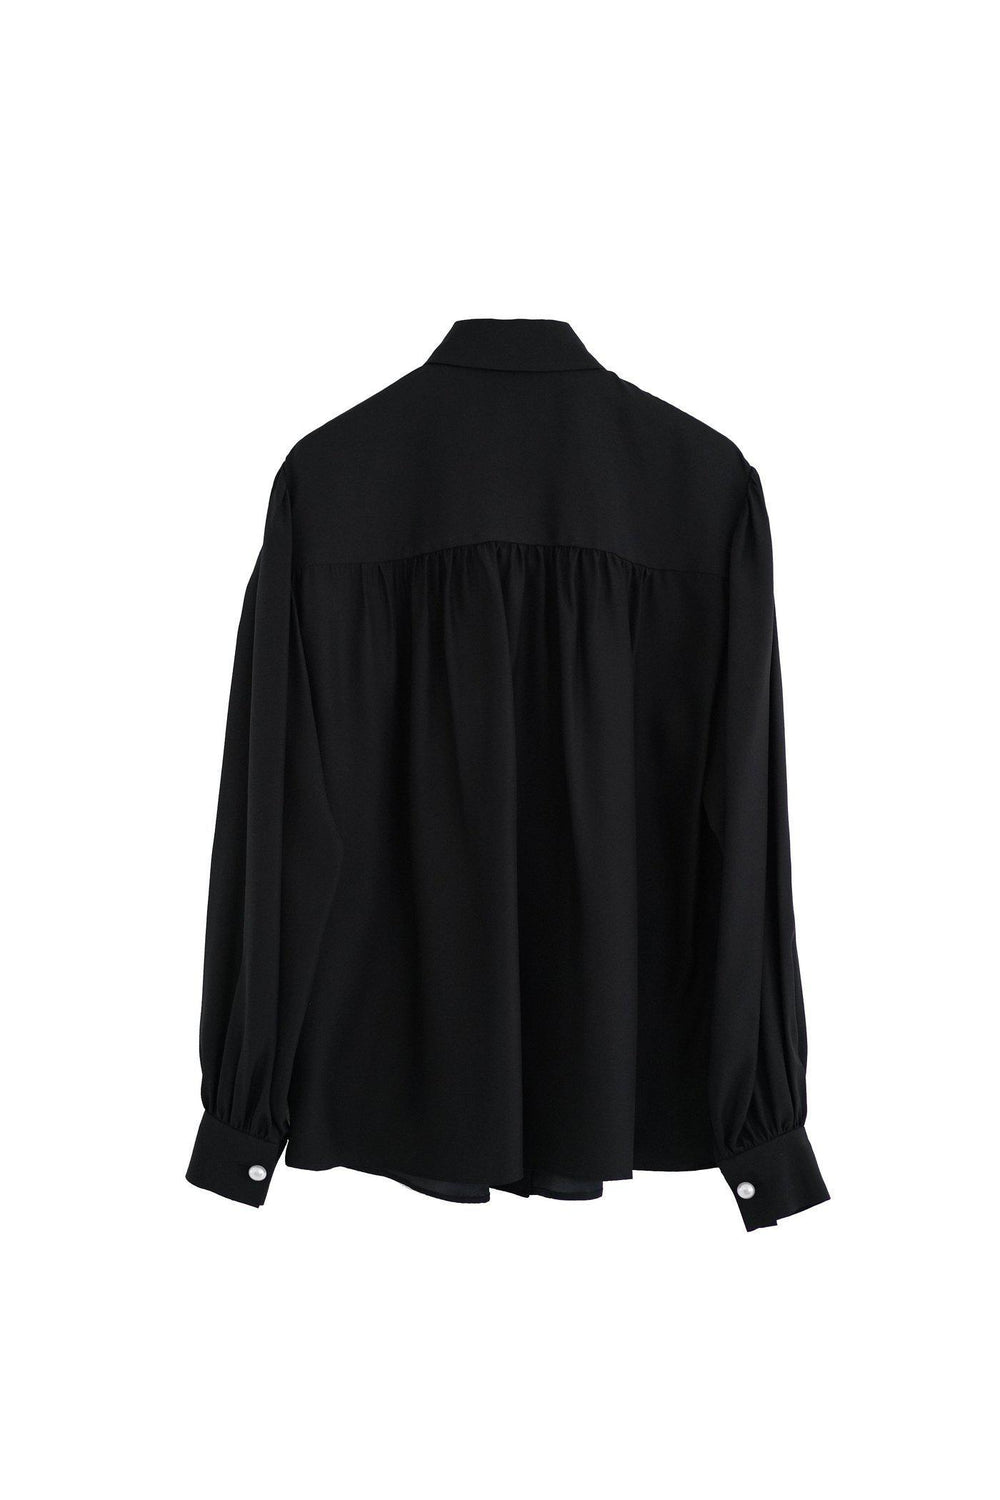 RYAN ROCHE Silk blouse with pearl buttons in black